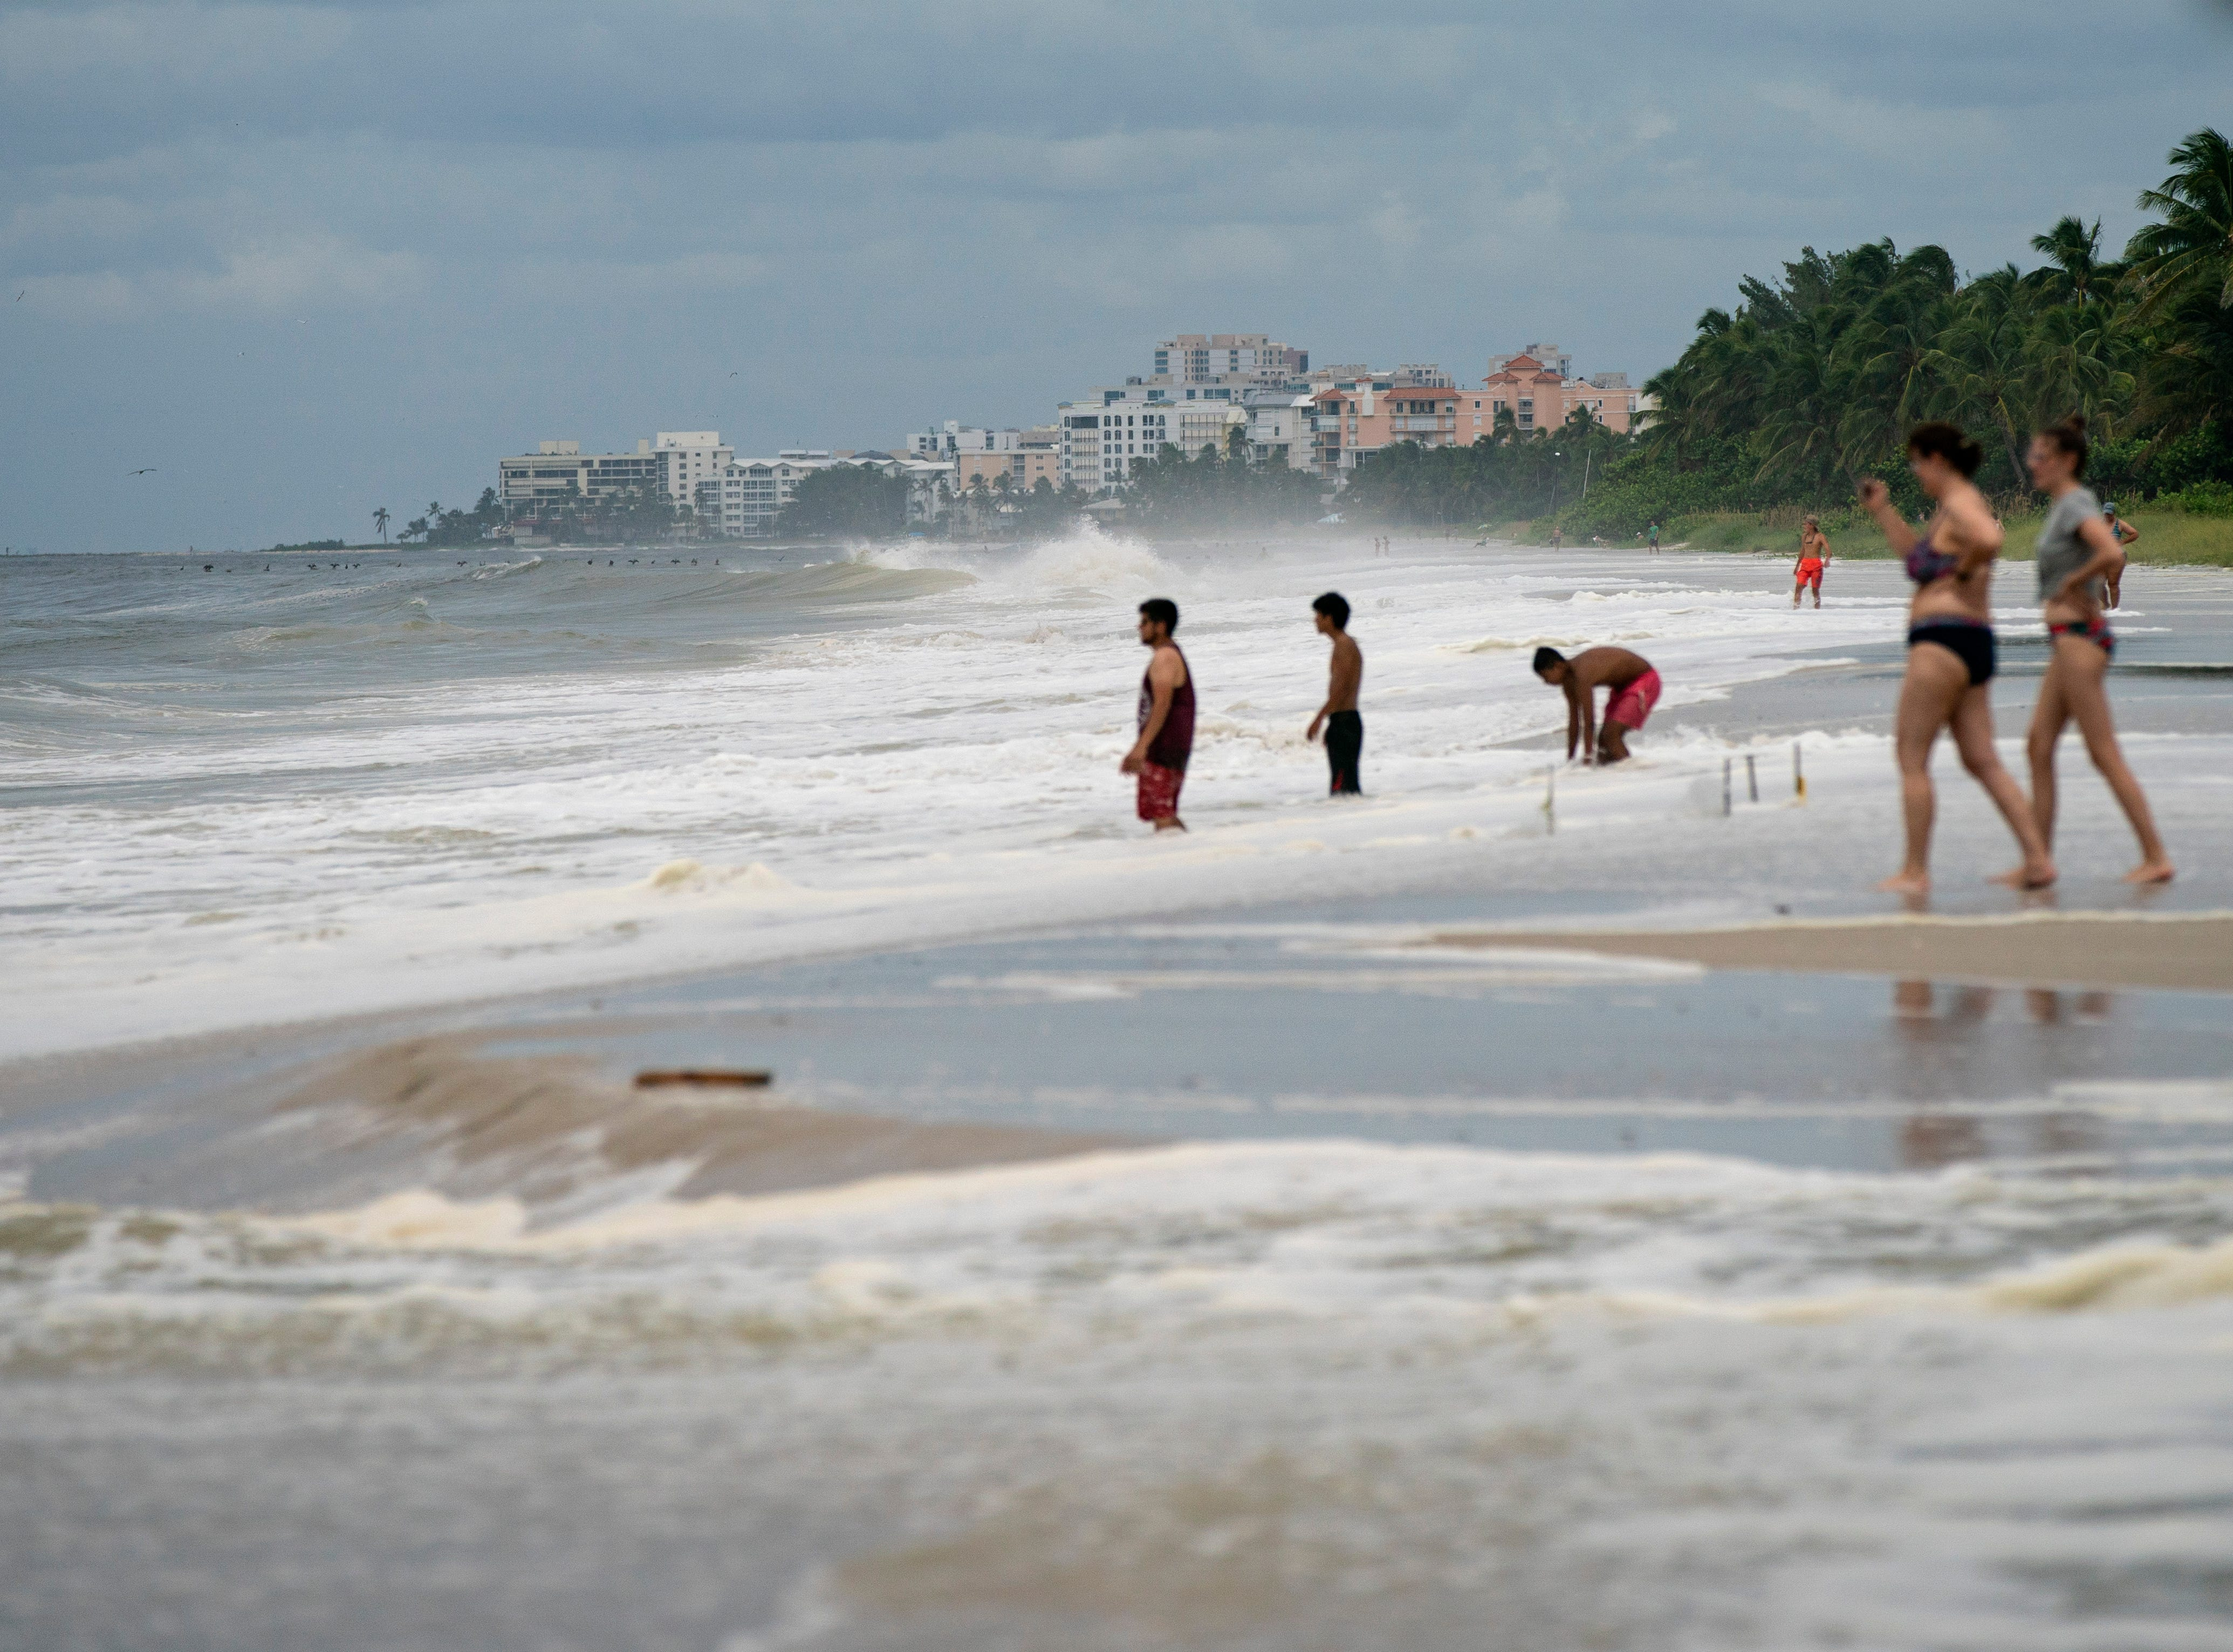 Beachgoers walk near the Naples Pier as Hurricane Michael's wind pushes the waves close to the dunes in Naples, FL. Tuesday, Oct. 9, 2018.